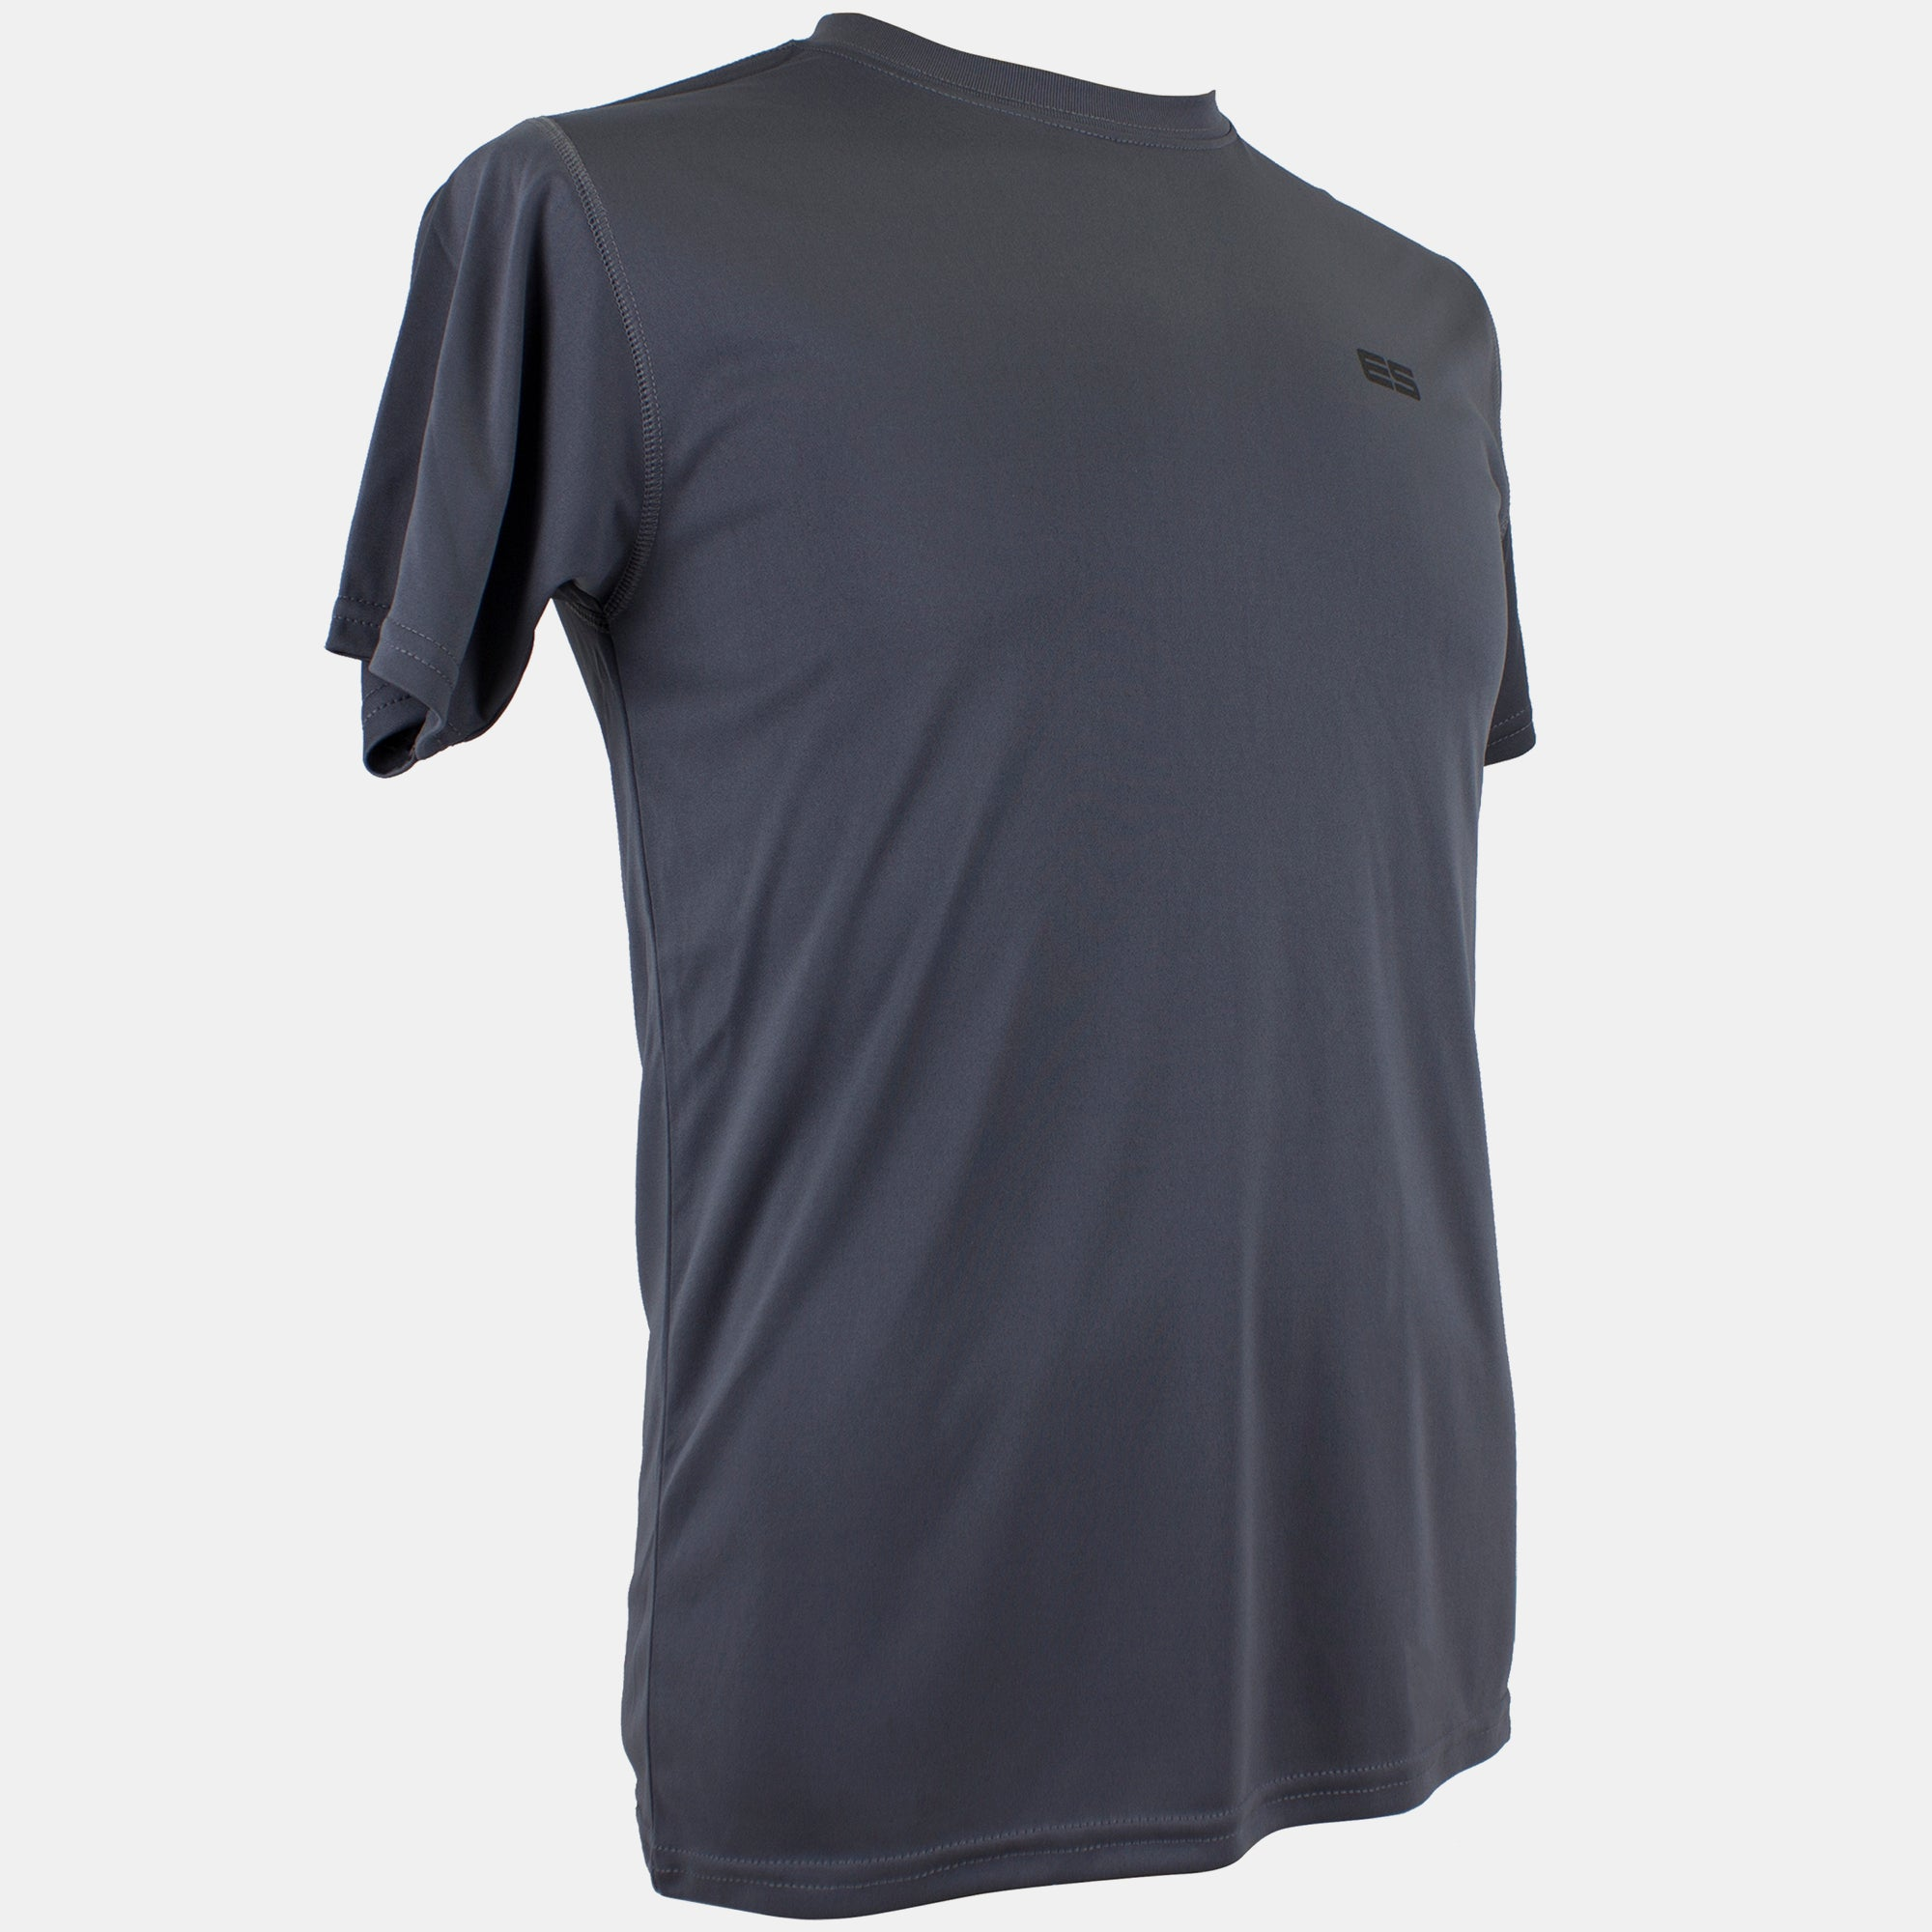 Eastsport Performance Tee